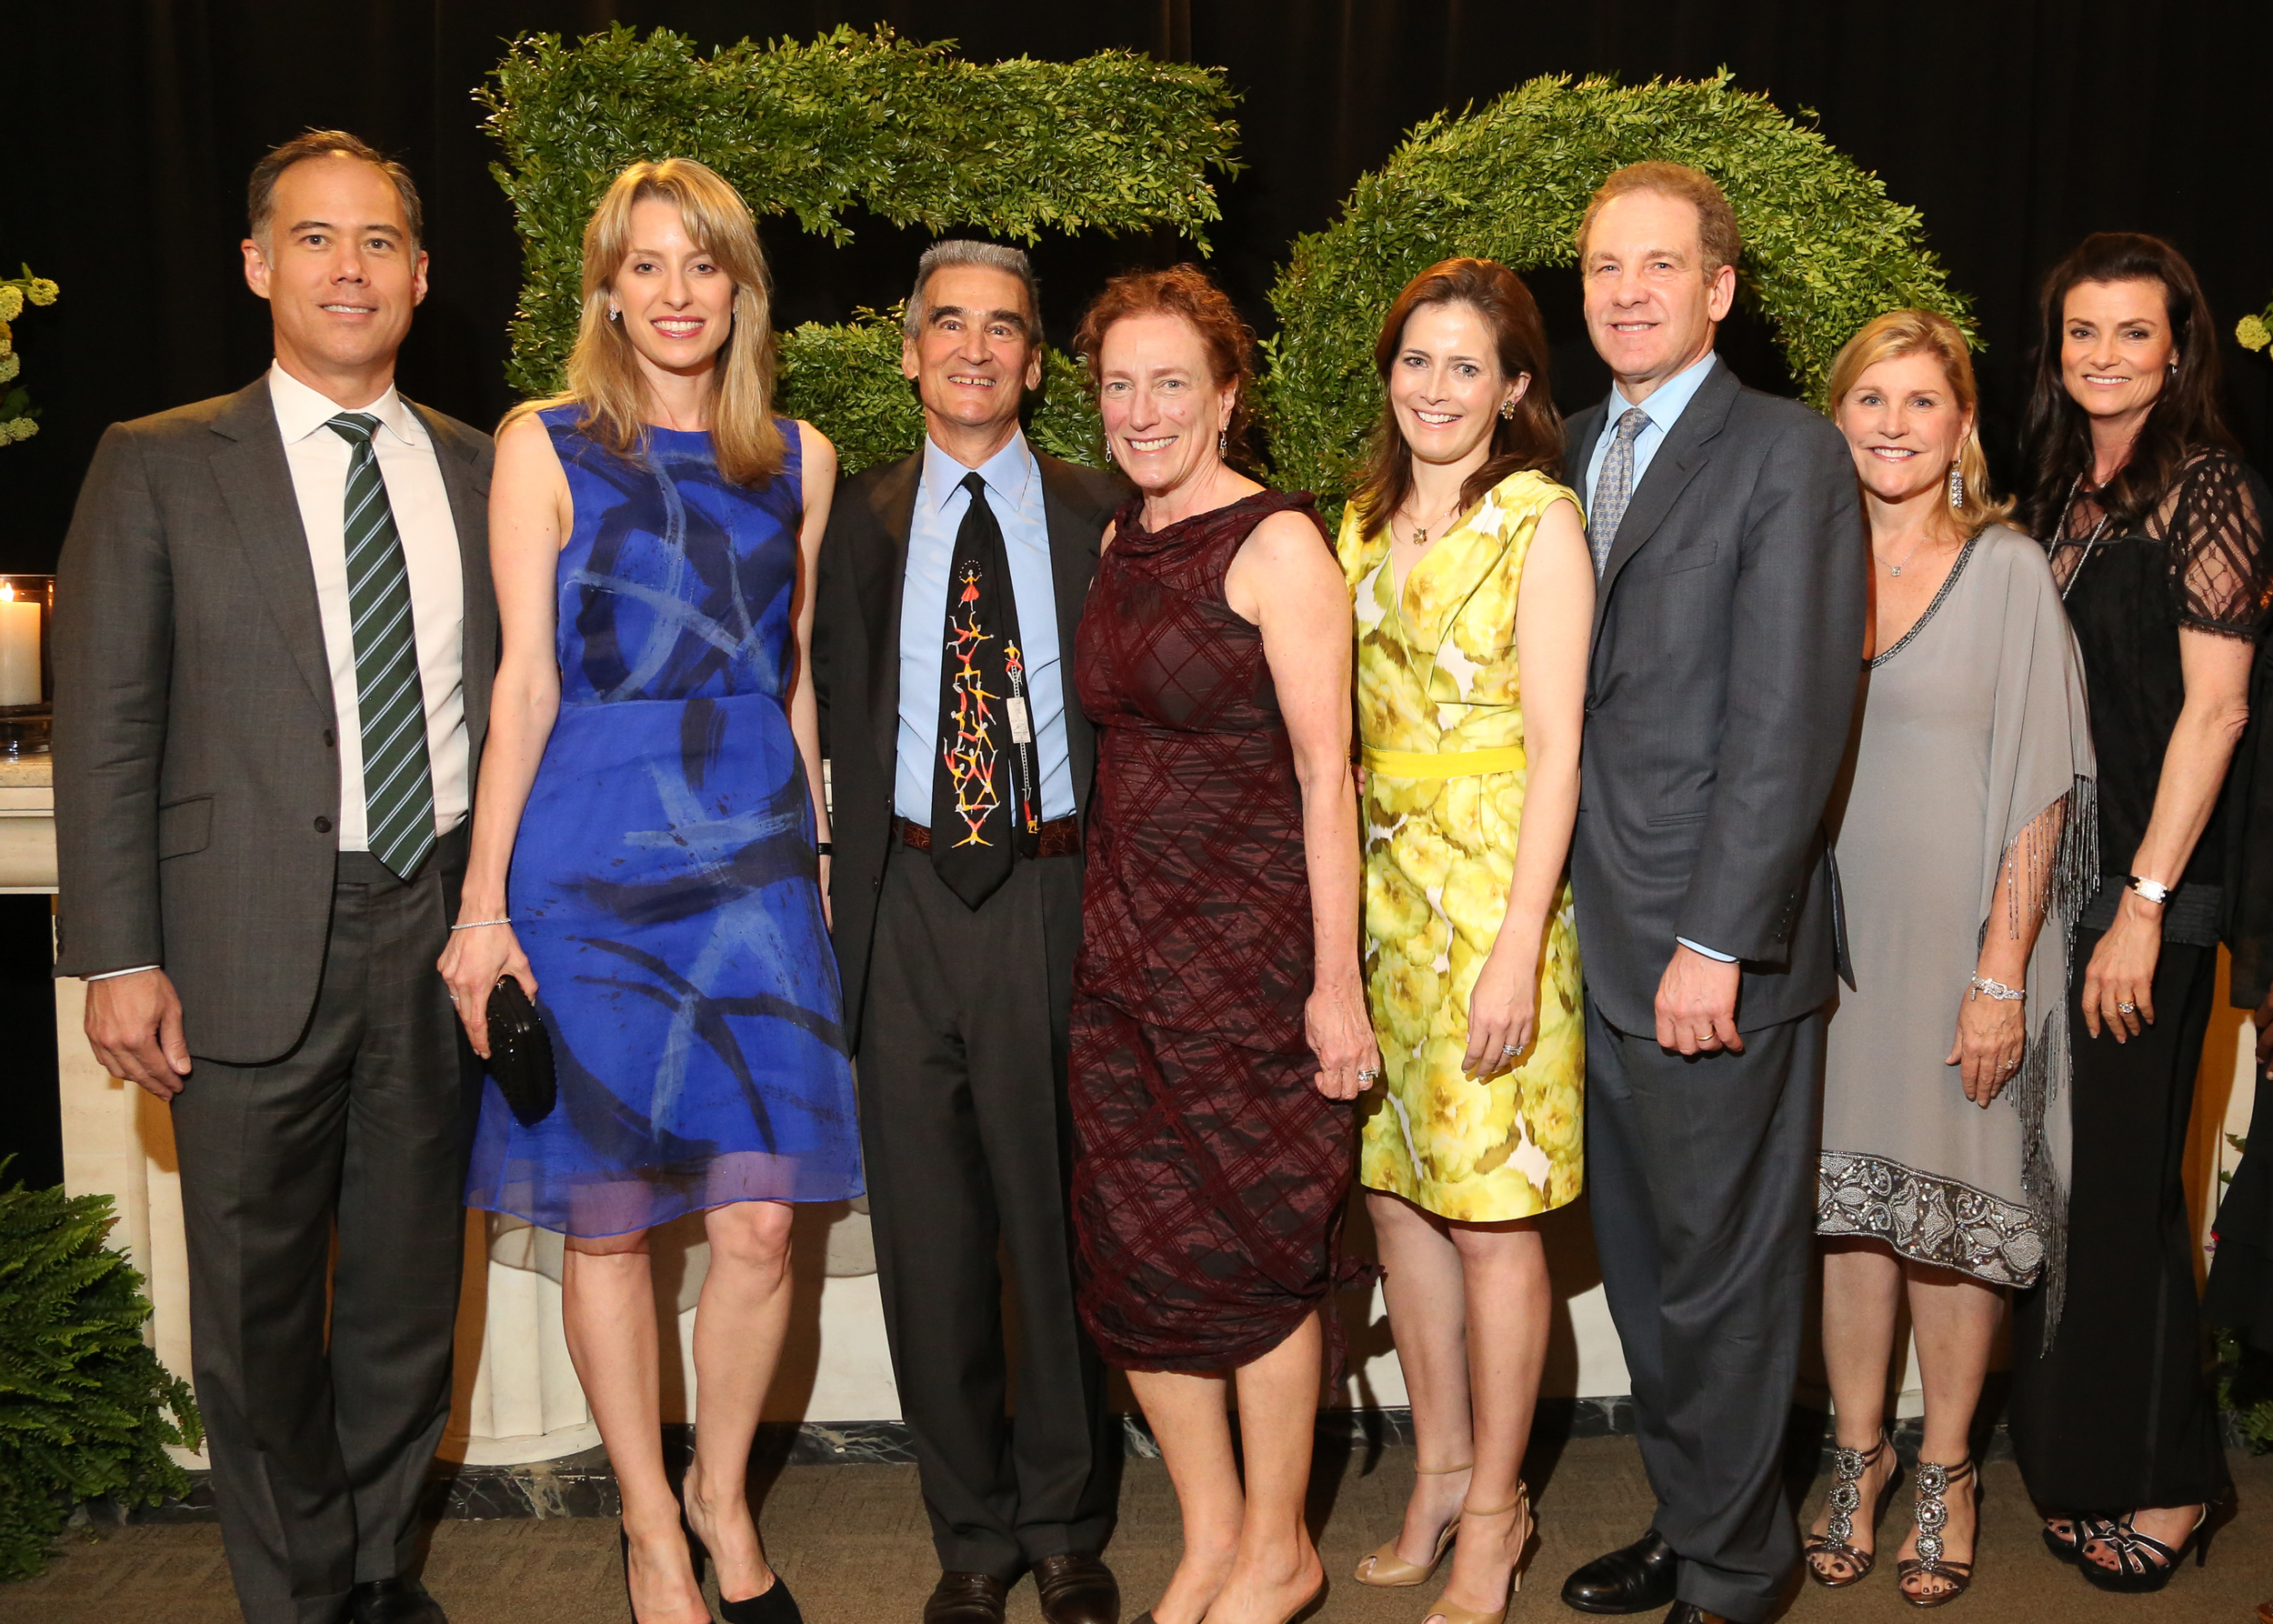 (From L-R) Event Chairmen Tom and Benan Ellis, Bud Shulman and Amy Newman, Joyce and Robert Giuffra, Susan R. Kessler, and Liz Armstrong.jpg